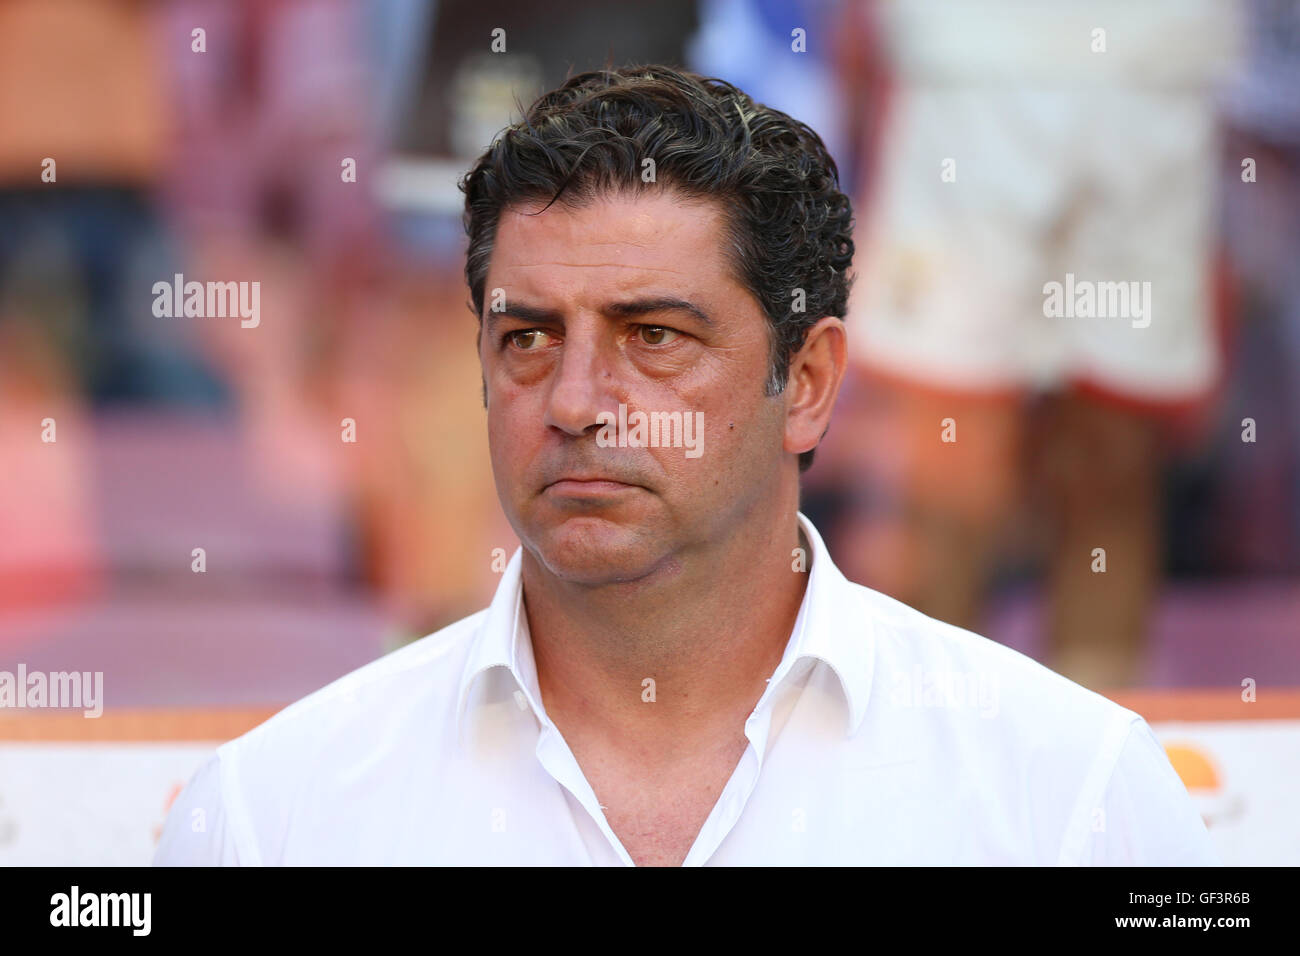 Lisbon, Portugal. 27th July, 2016. SL Benfica's head coach Rui Vitoria before the start of the game against Torino Stock Photo